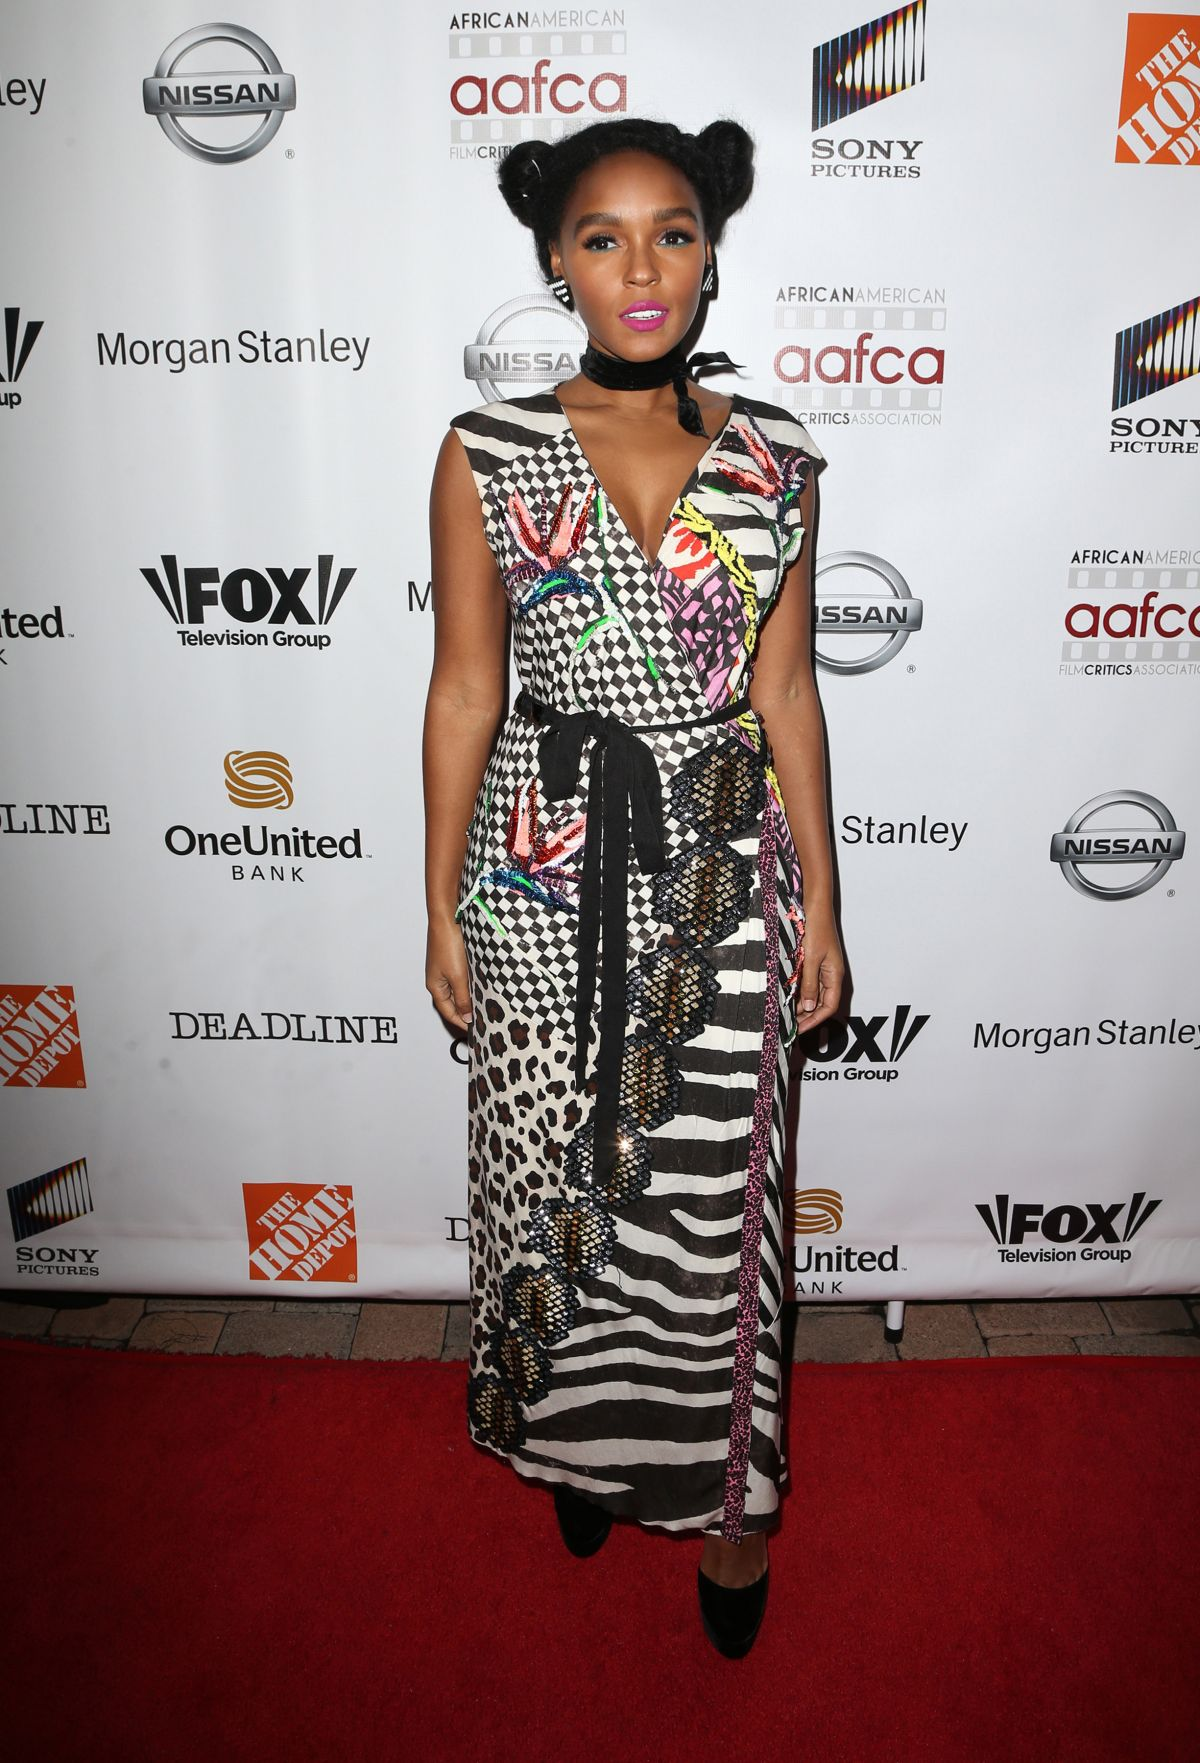 JANELLE MONAE at 8th Annual AAFCA Awards in Los Angeles 02/08/2017